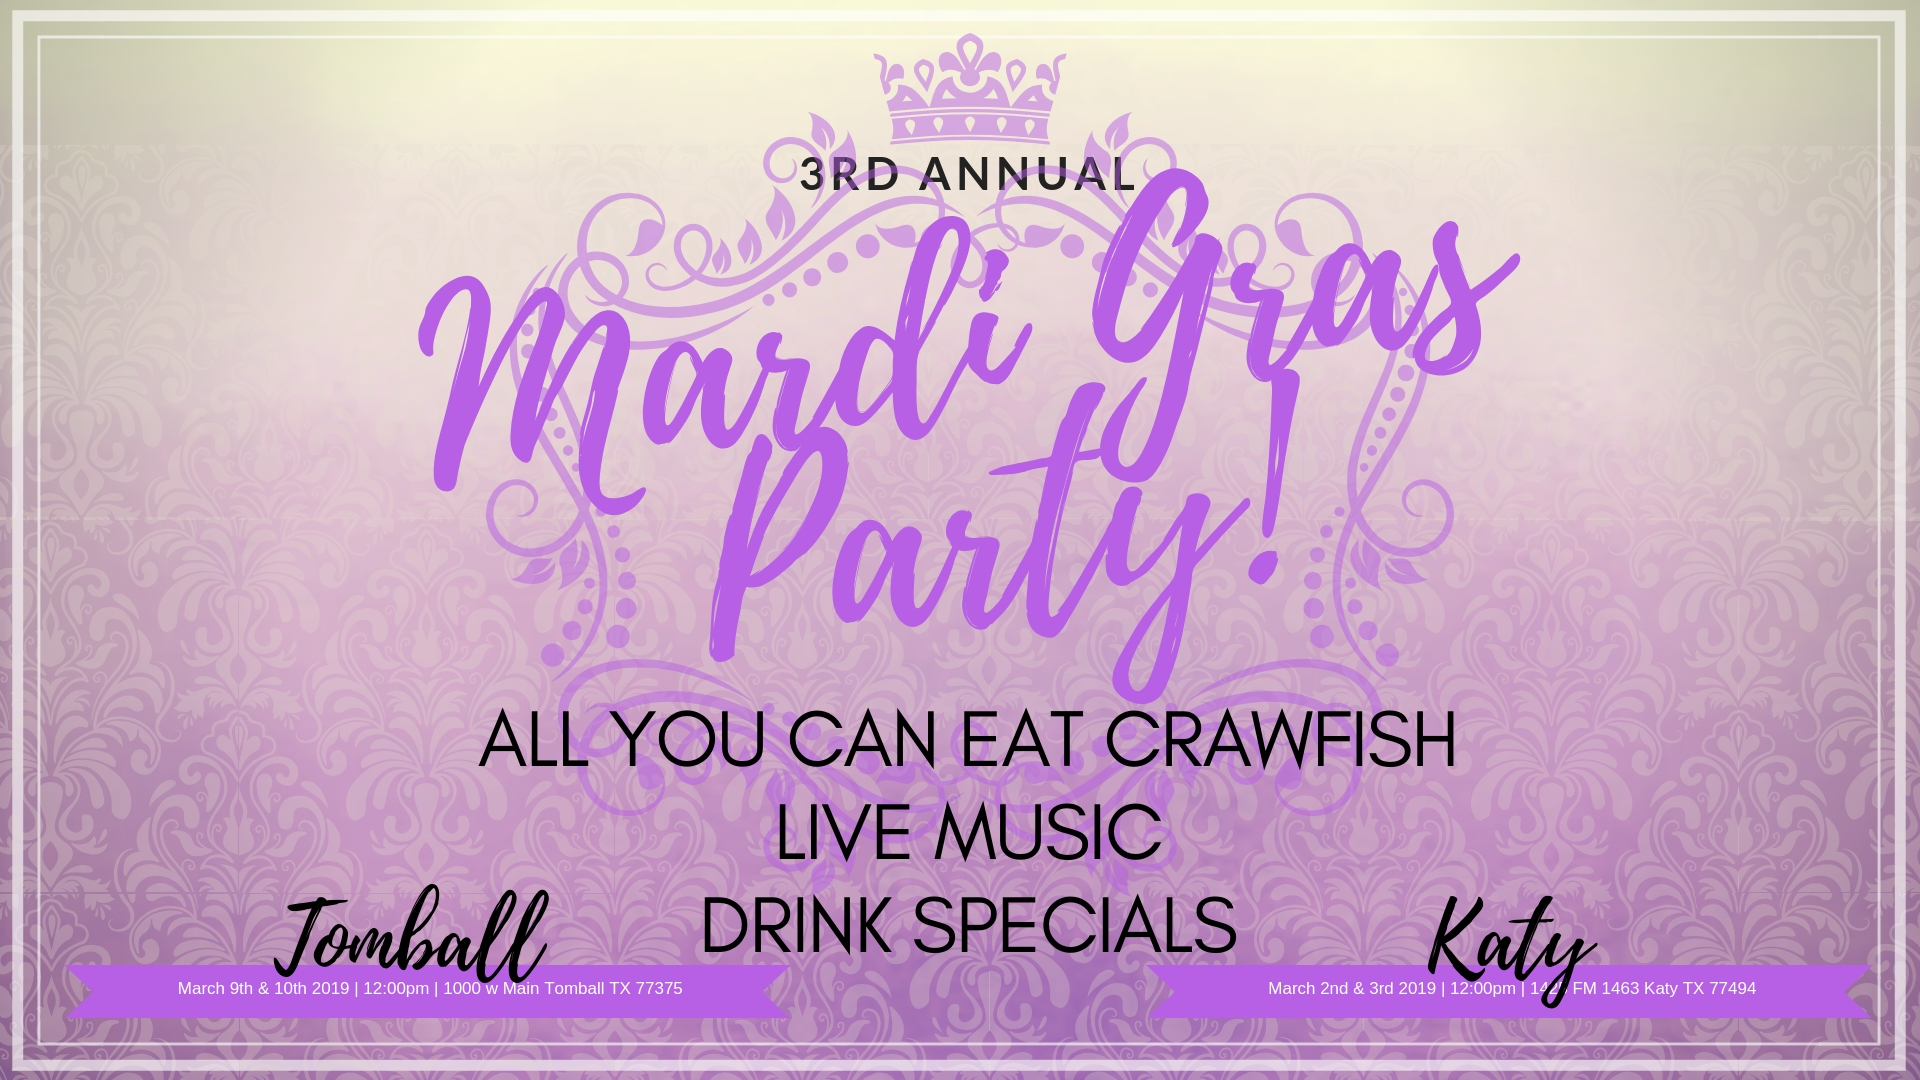 all you can eat crawfishlive musicdrink specials.jpg